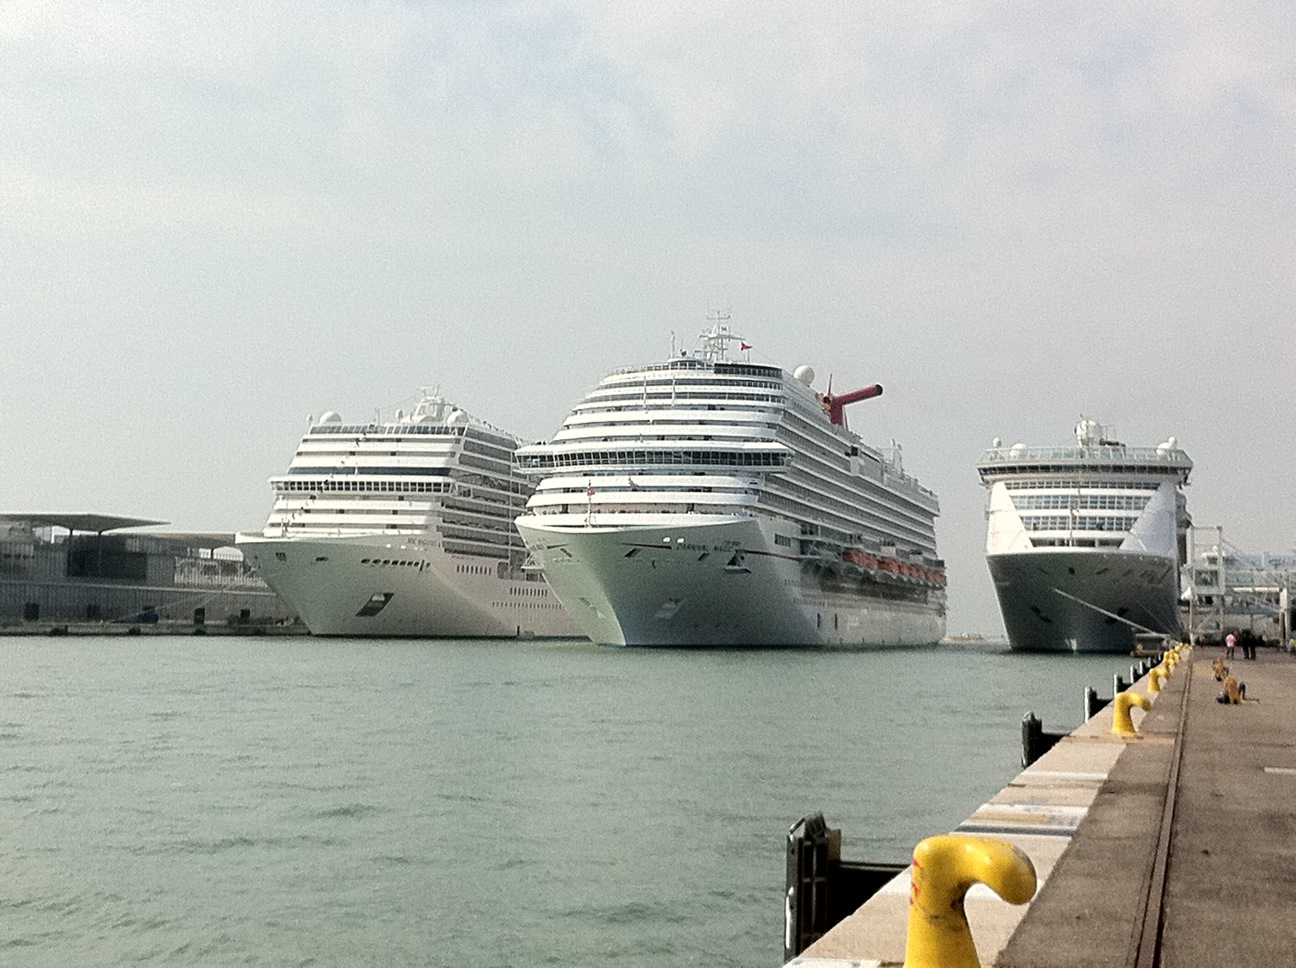 Carnival Magic Arrives In Venice For Its Maiden Voyage